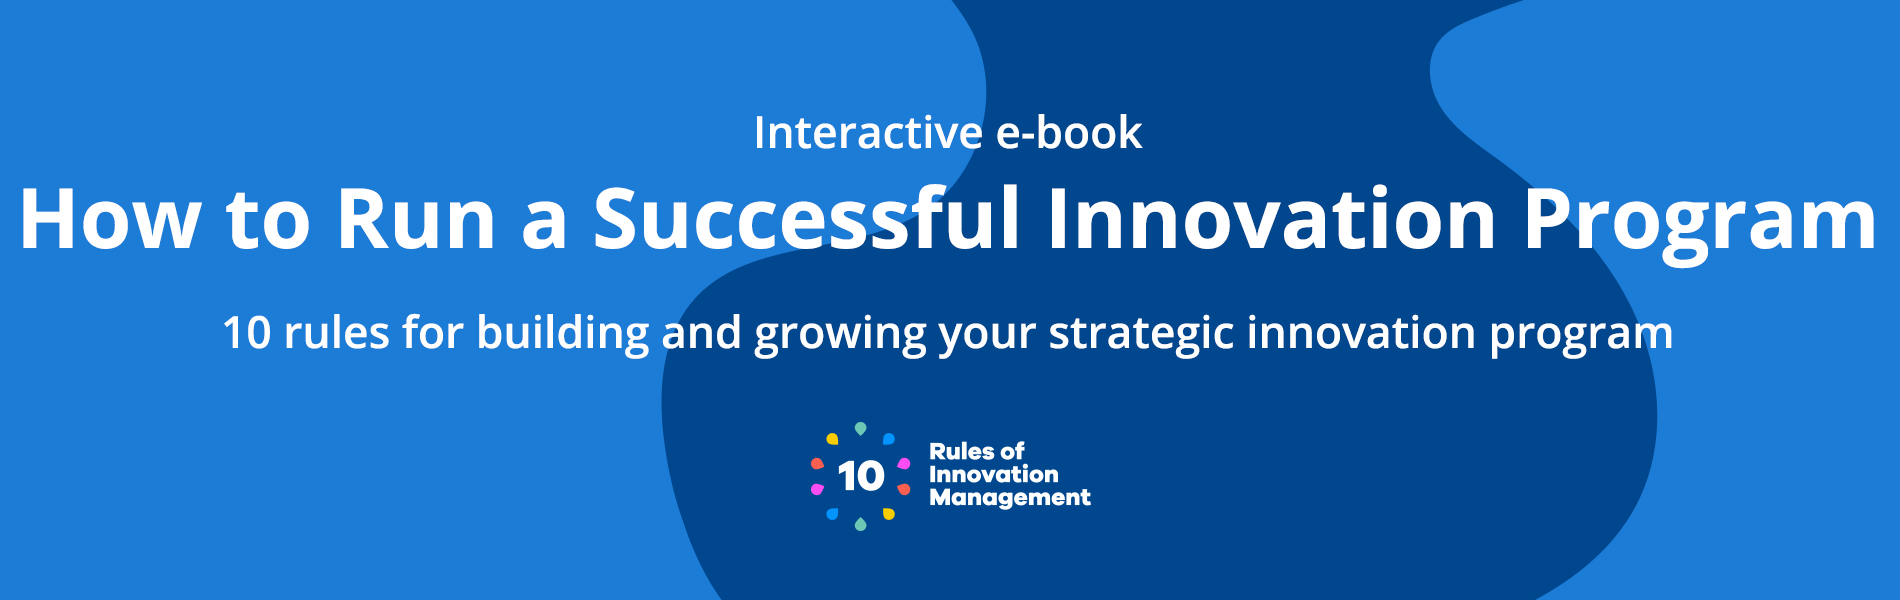 10-rules-innovation-management-ebook-landig-page-header